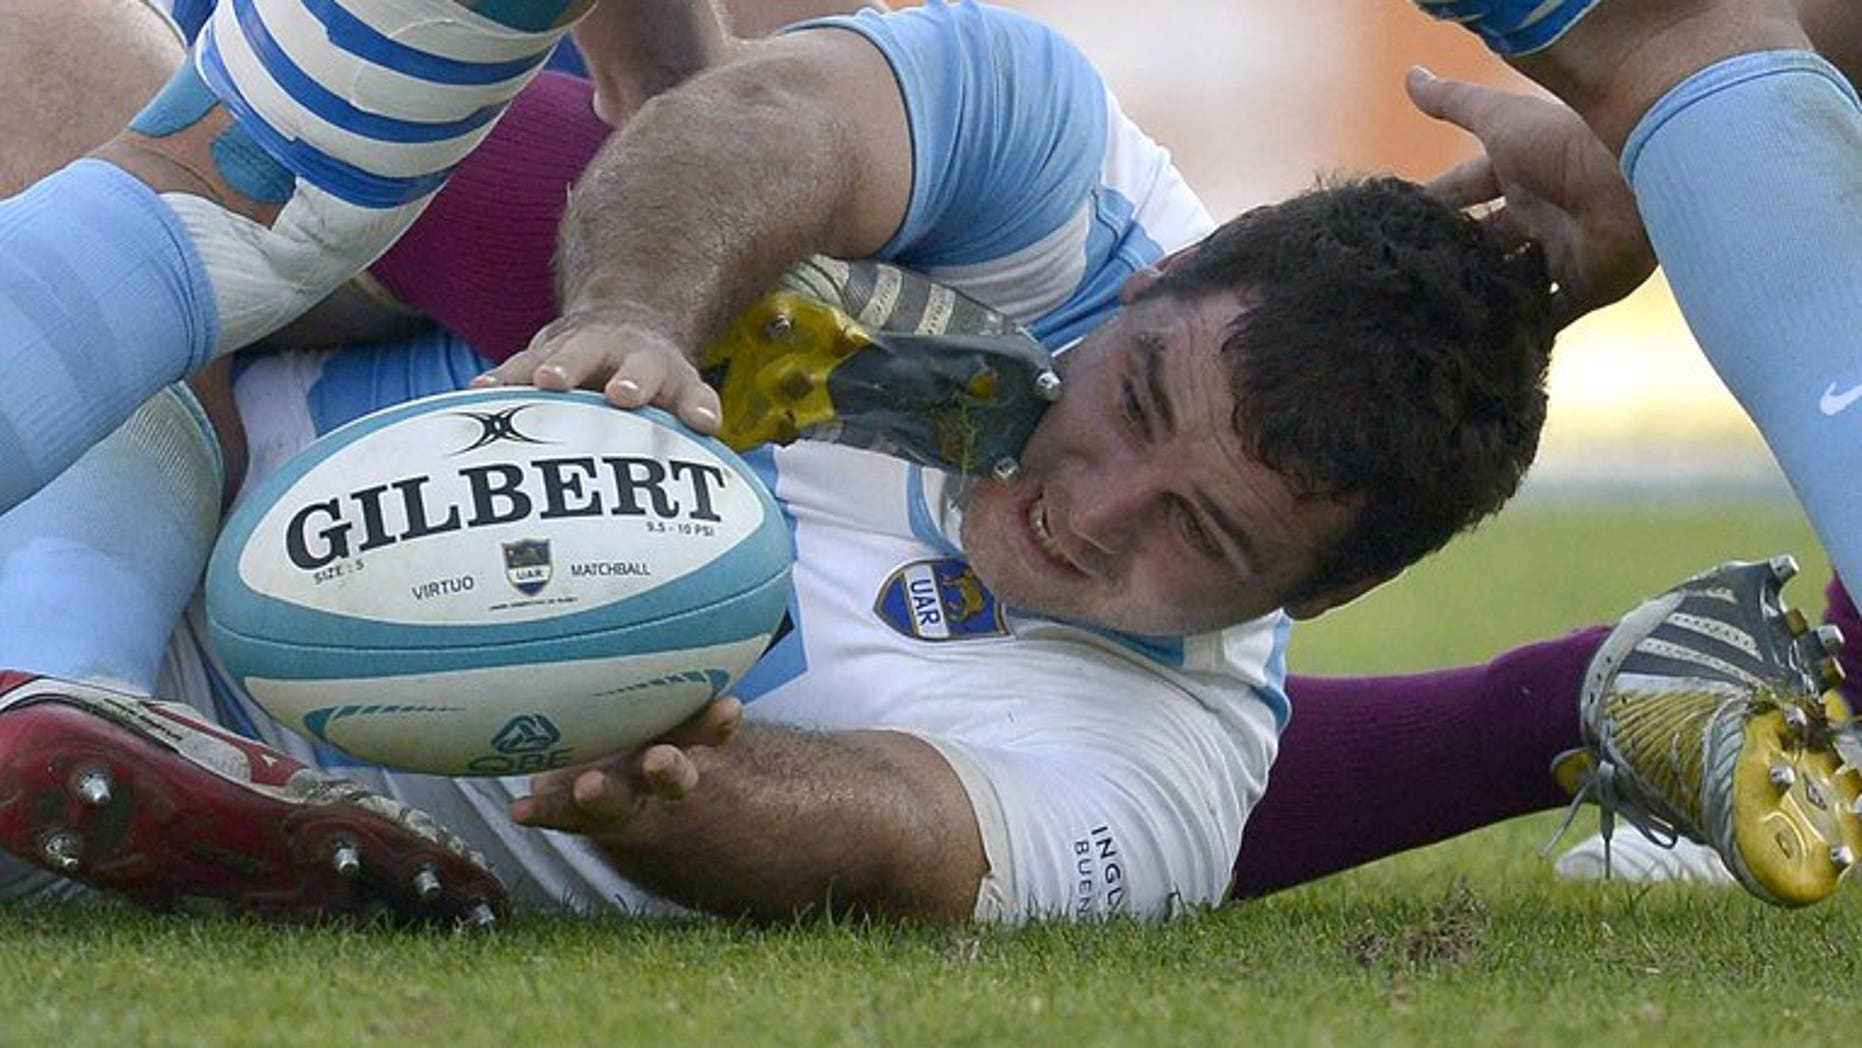 Argentina's Los Pumas Tomas Leonardi (centre) passes the ball to teammates during a match against England at Jose Amalfitani stadium in Buenos Aires on June 15, 2013. Leonardi has joined Edinburgh on a three-month contract.